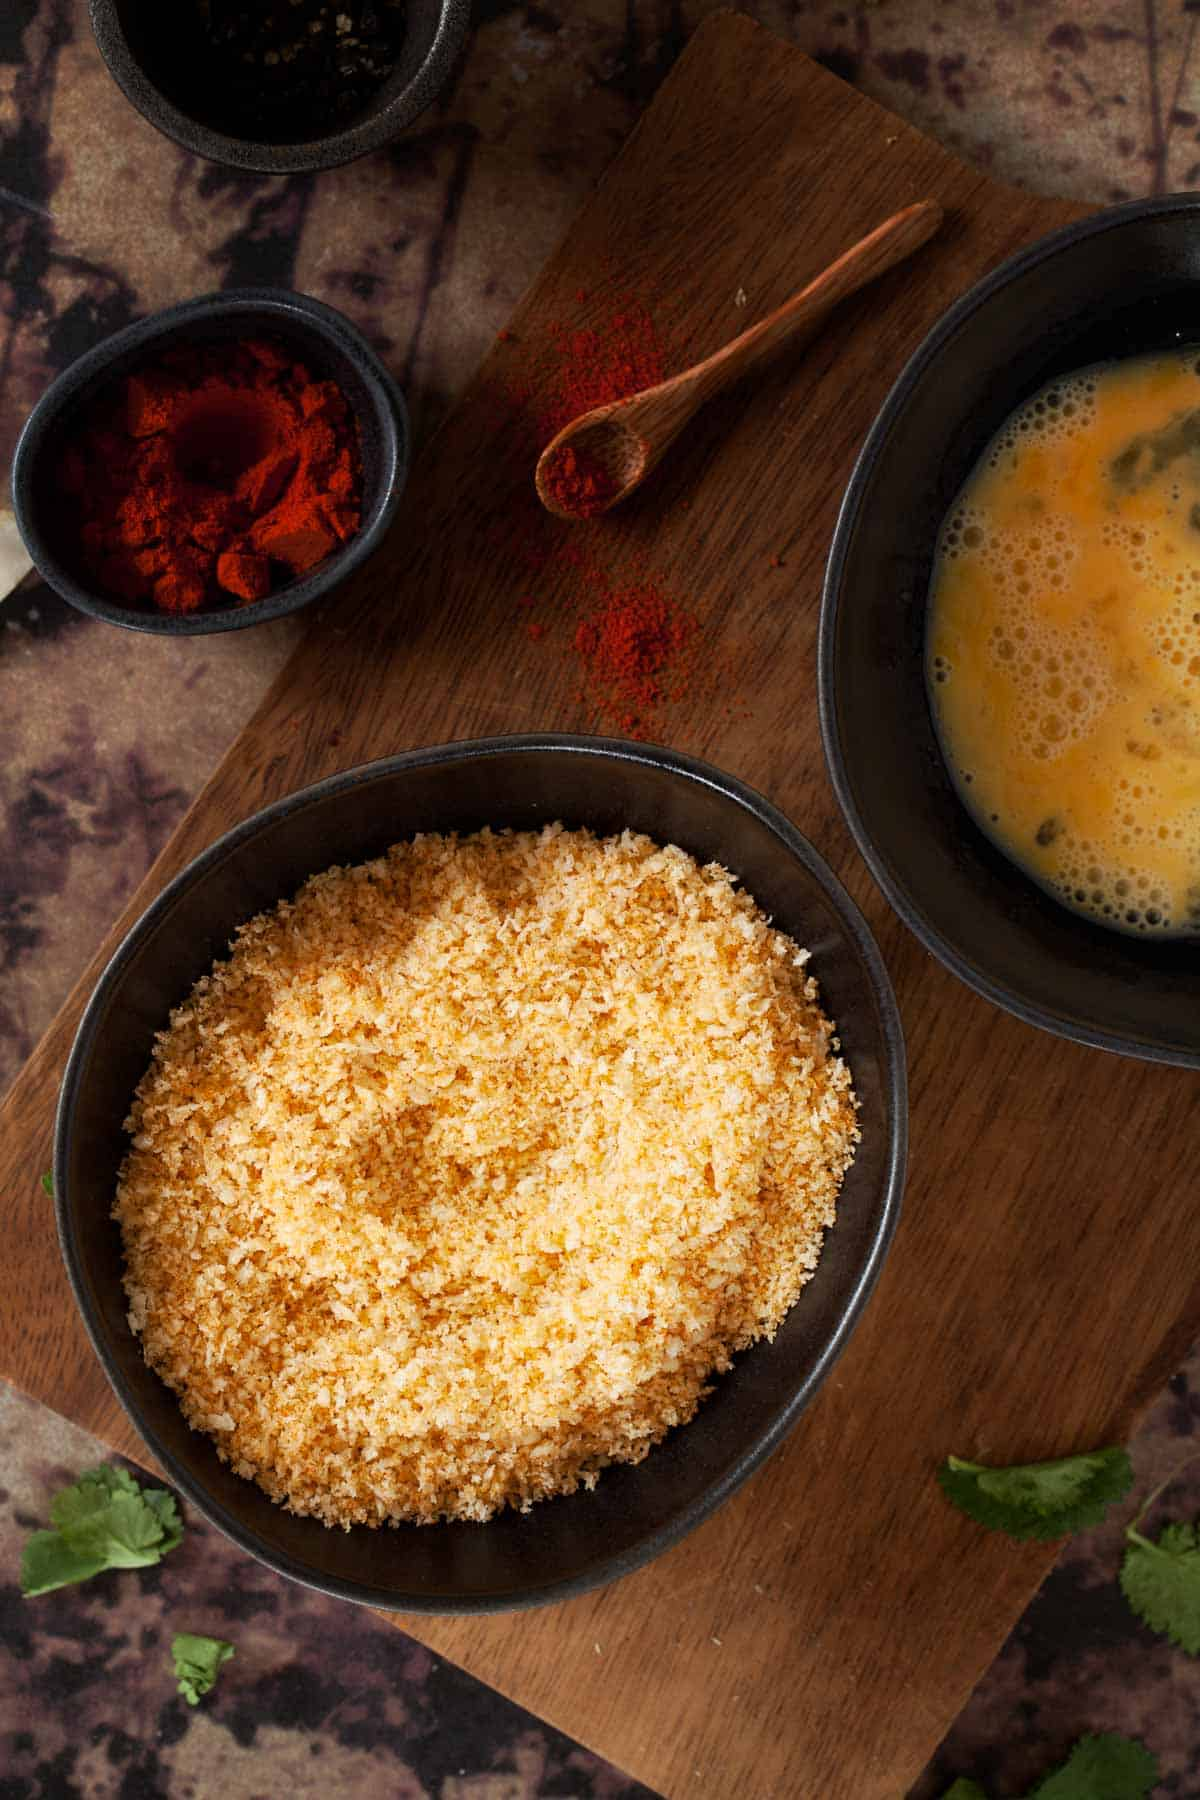 Panko breadcrumbs in a dark bowl with another bowl containing beaten egg next to it